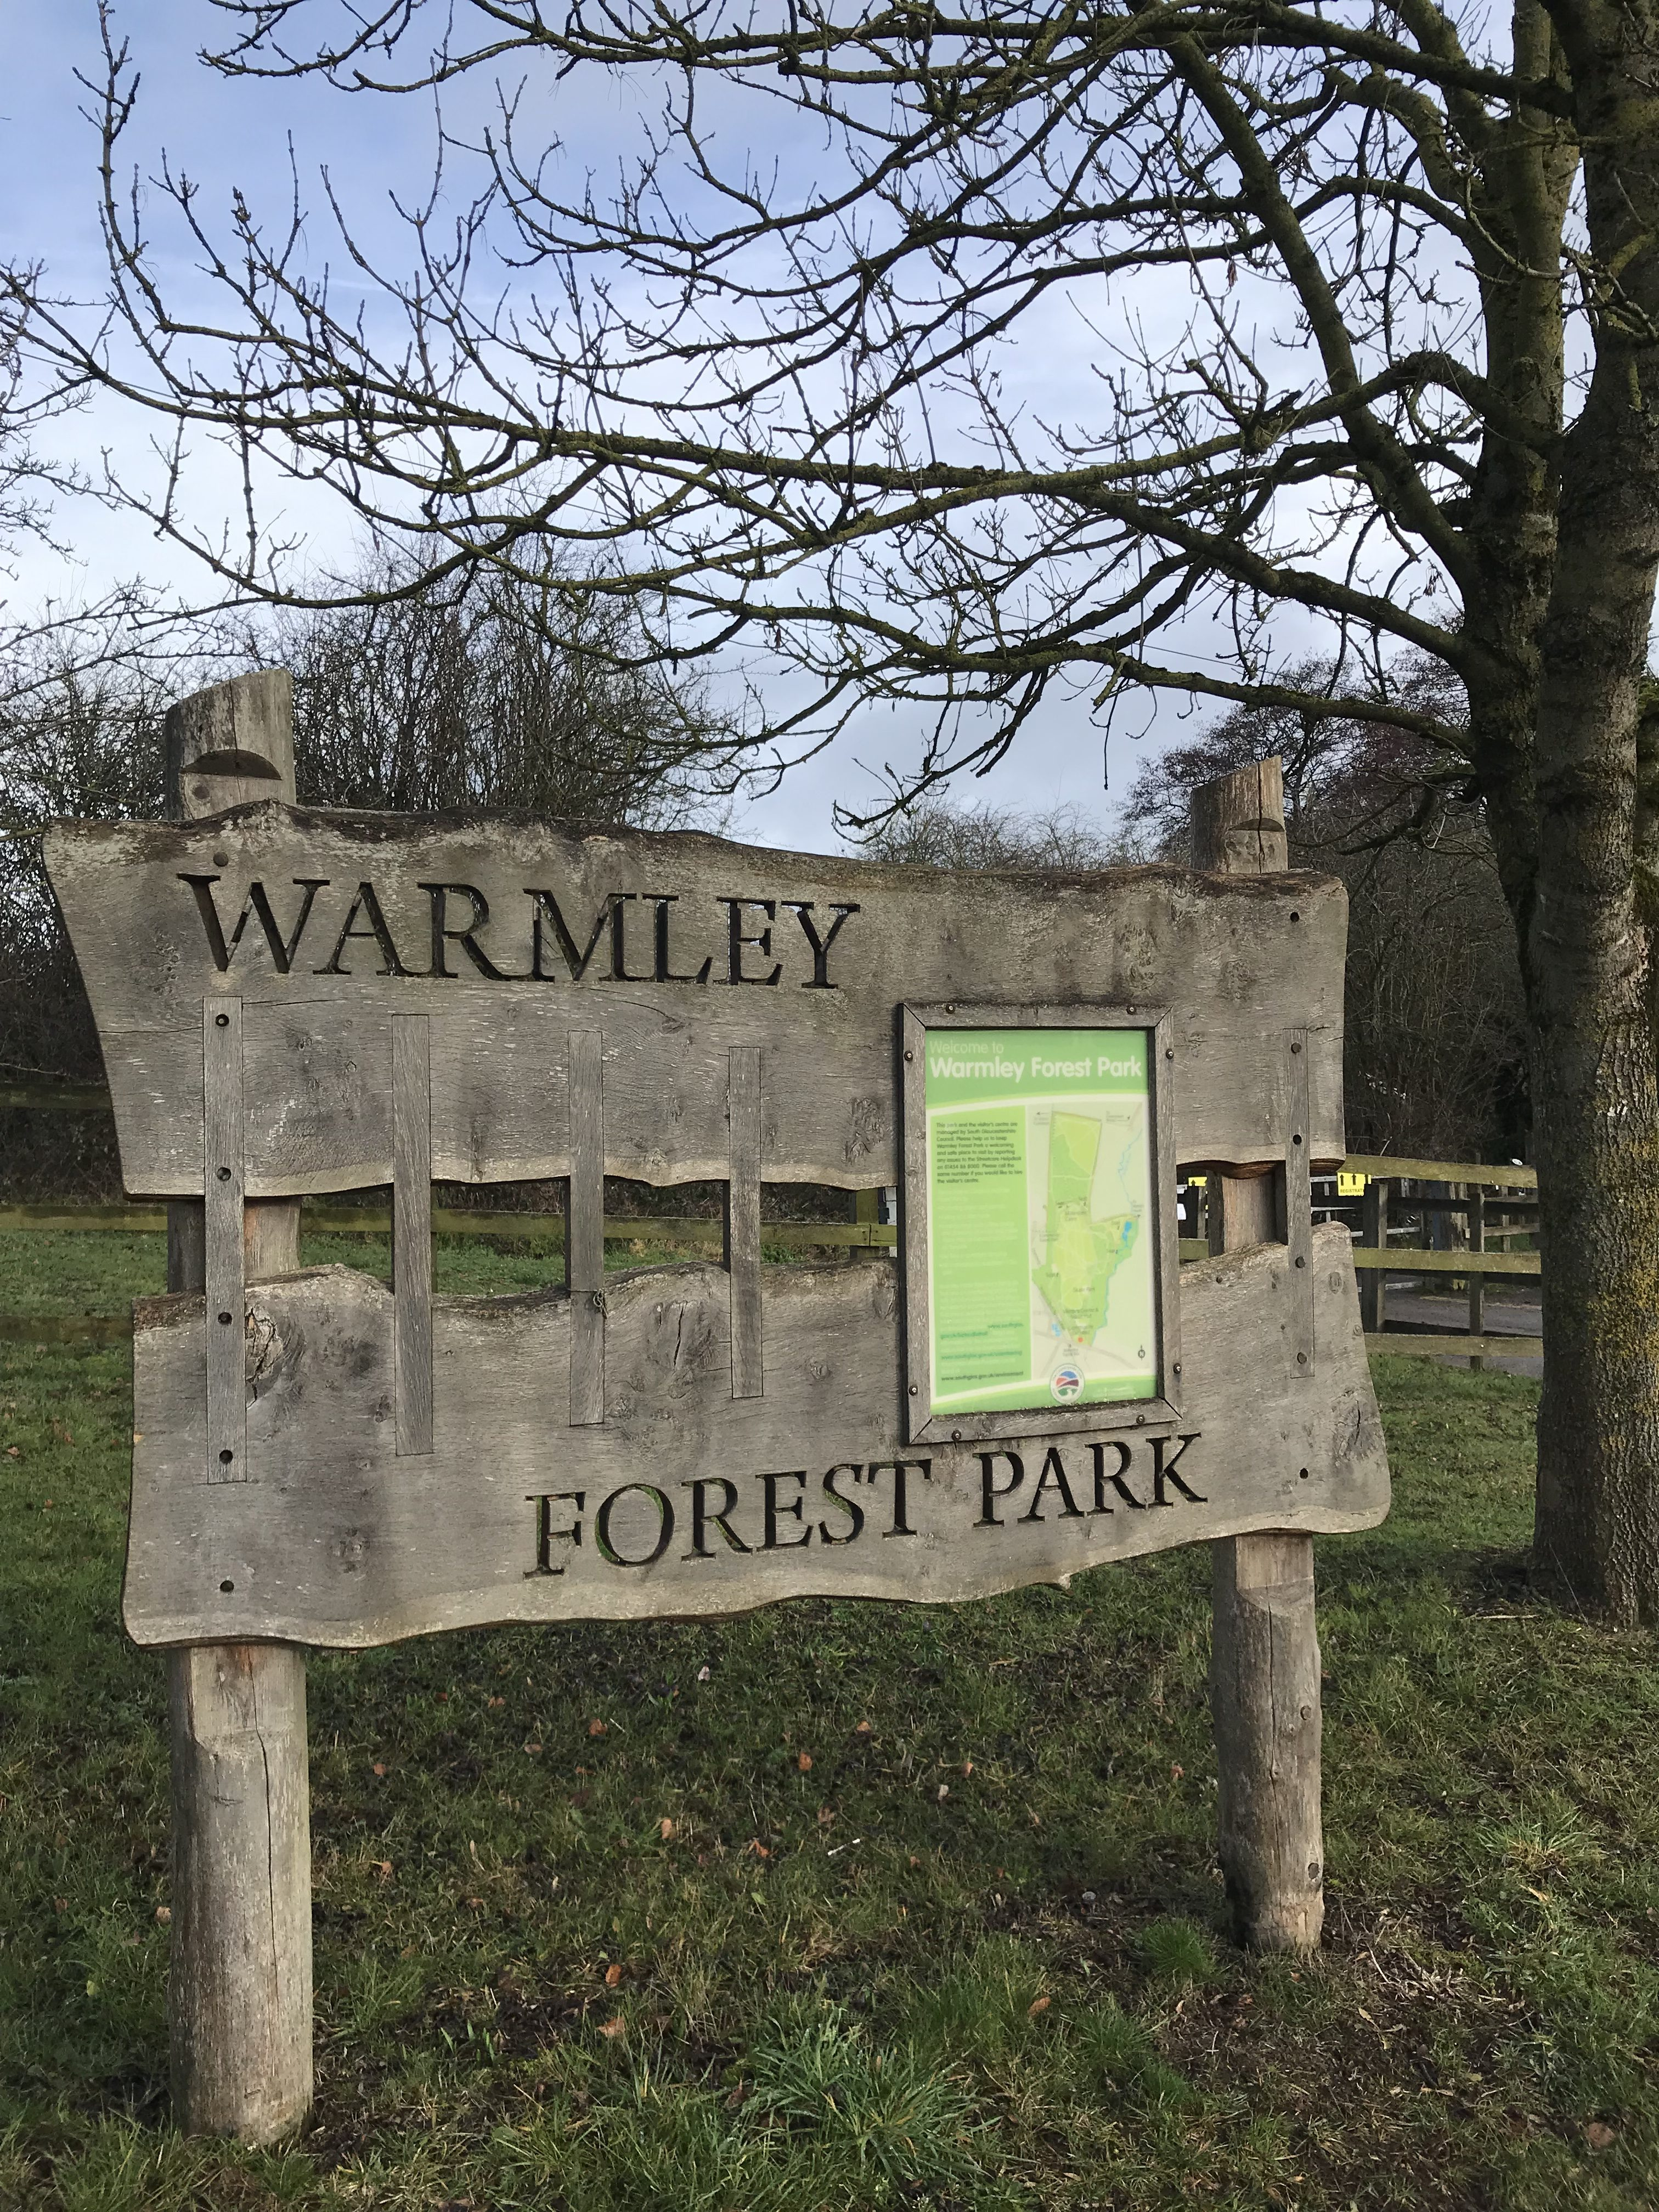 Warmley Forest Park 5k Race Review